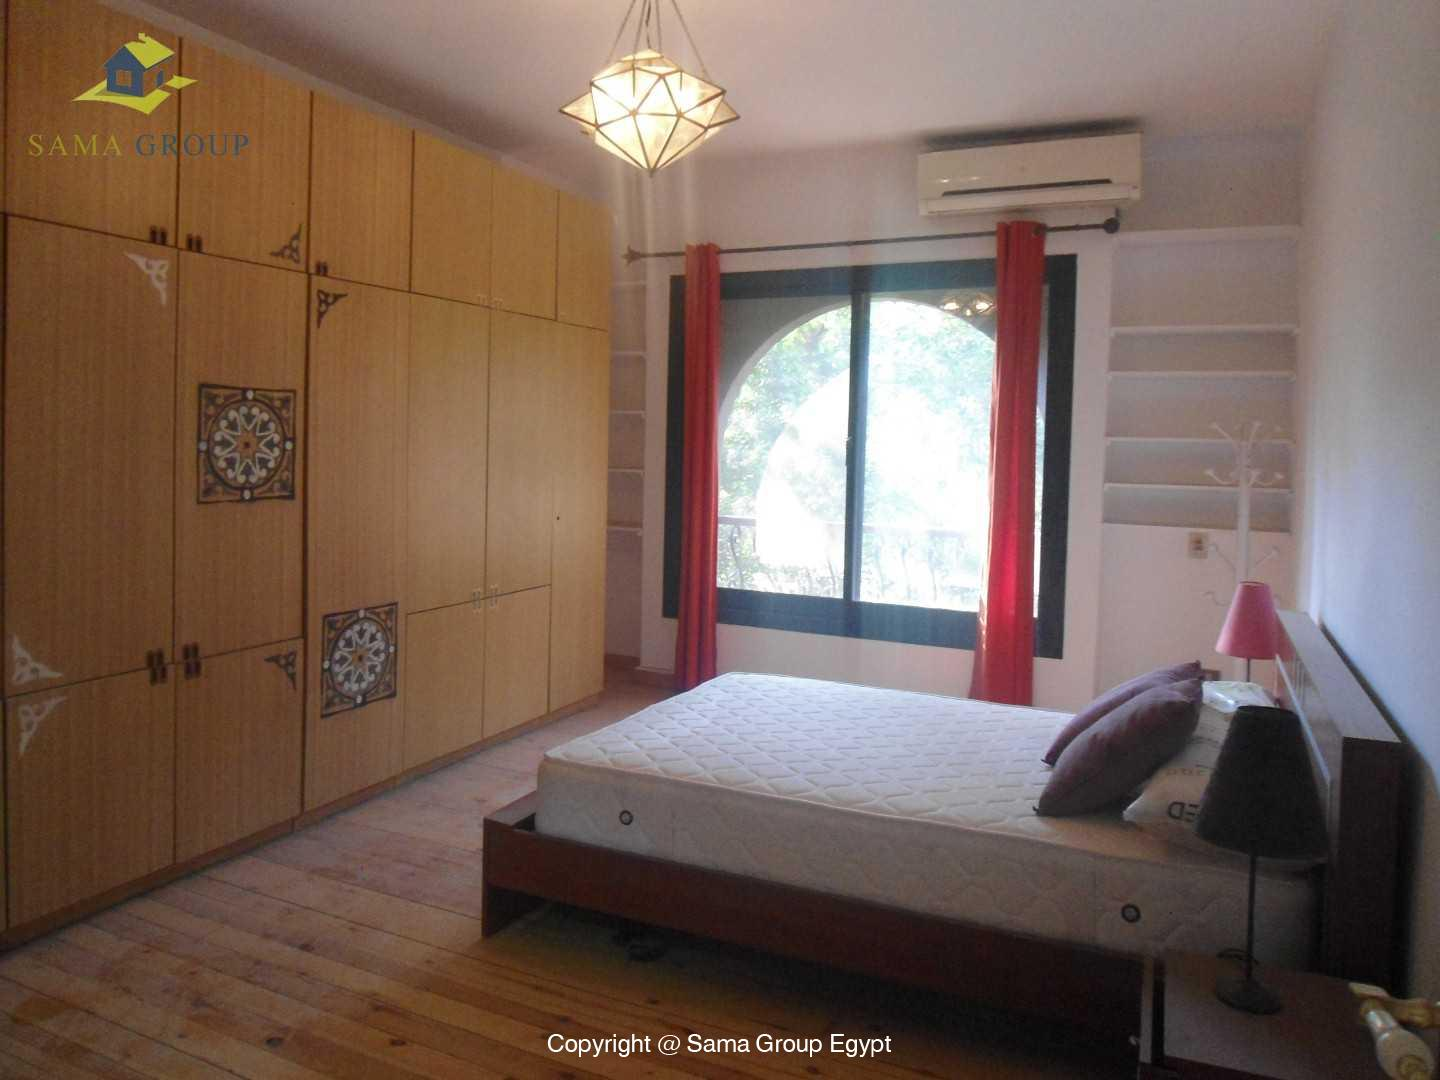 Furnished Apartment For Rent In Maadi Sarayat,Modern Furnished,Apartment NO #3